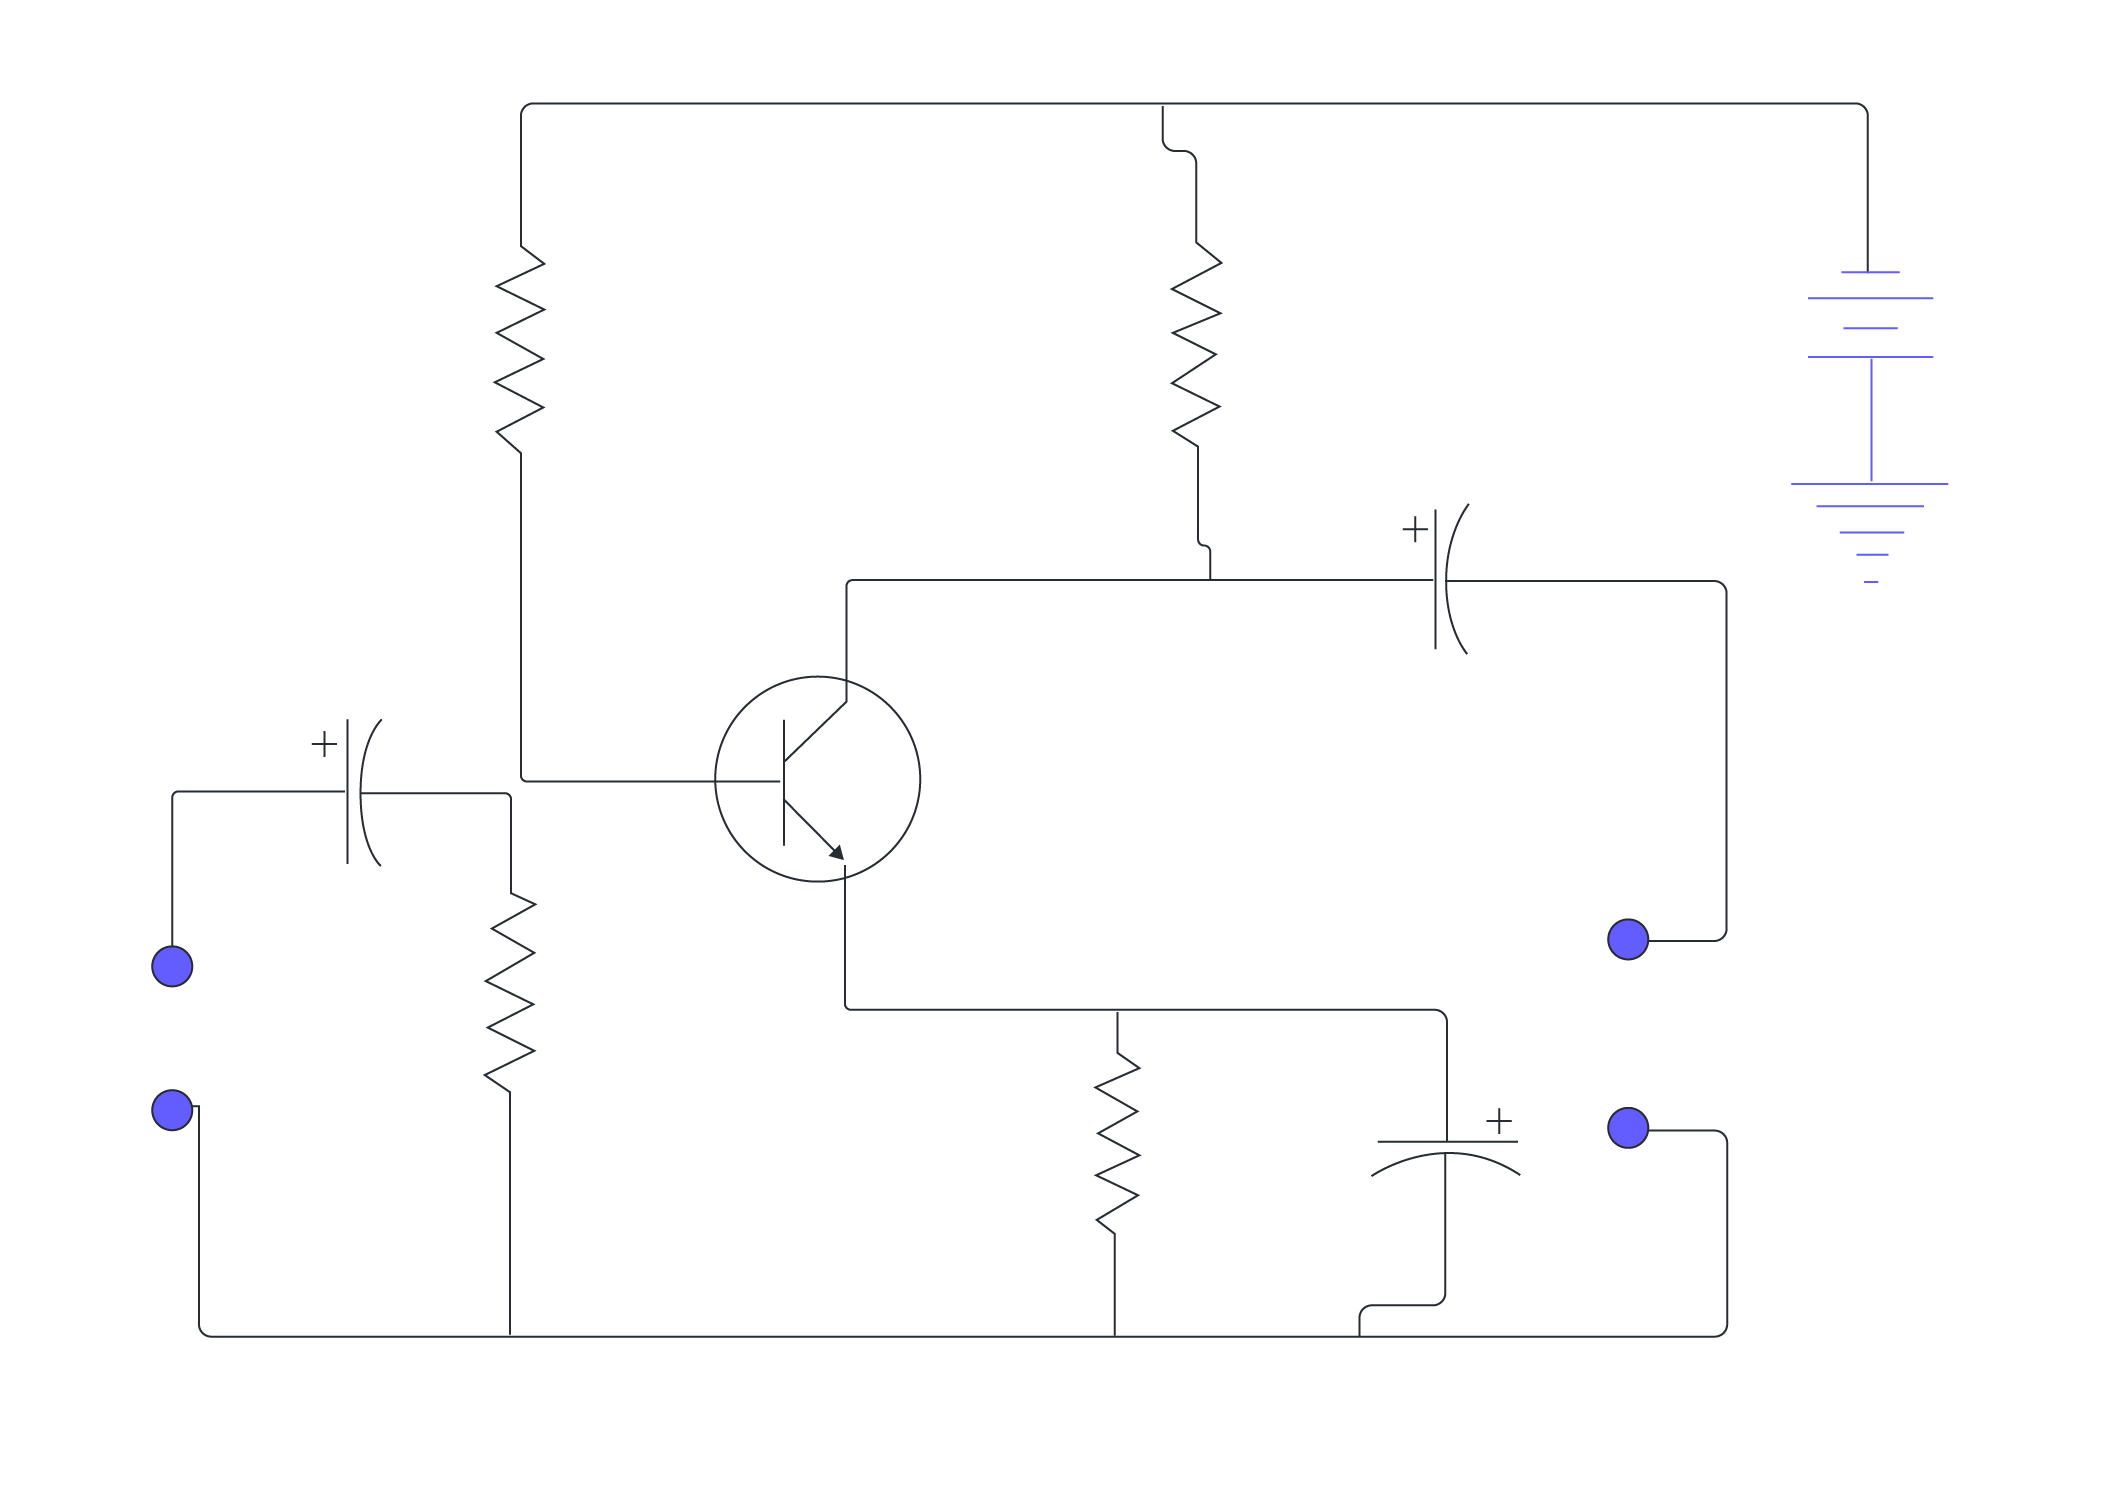 Lucidchart circuit diagram maker